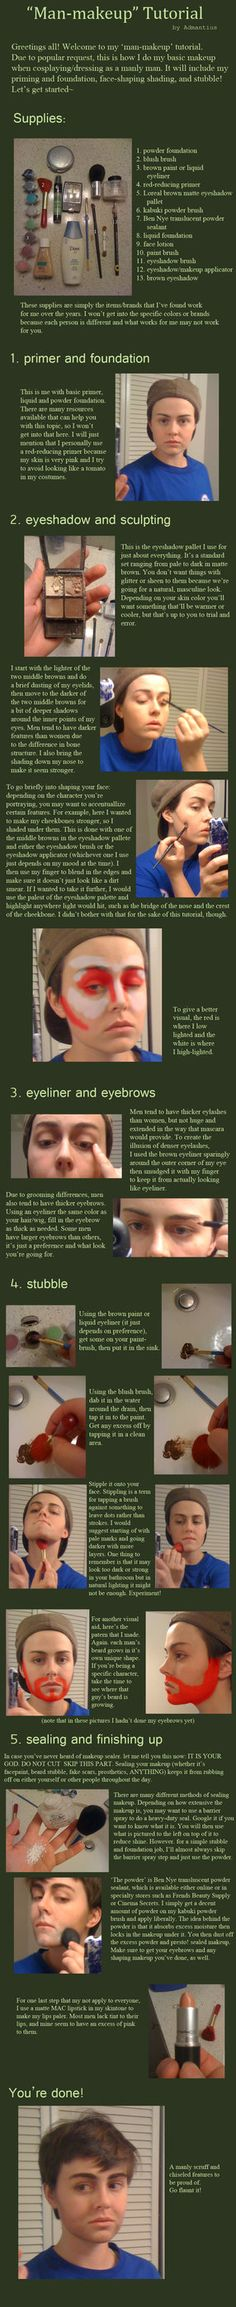 'Man-Makeup' and Stubble Tutorial by Admantius on DeviantArt